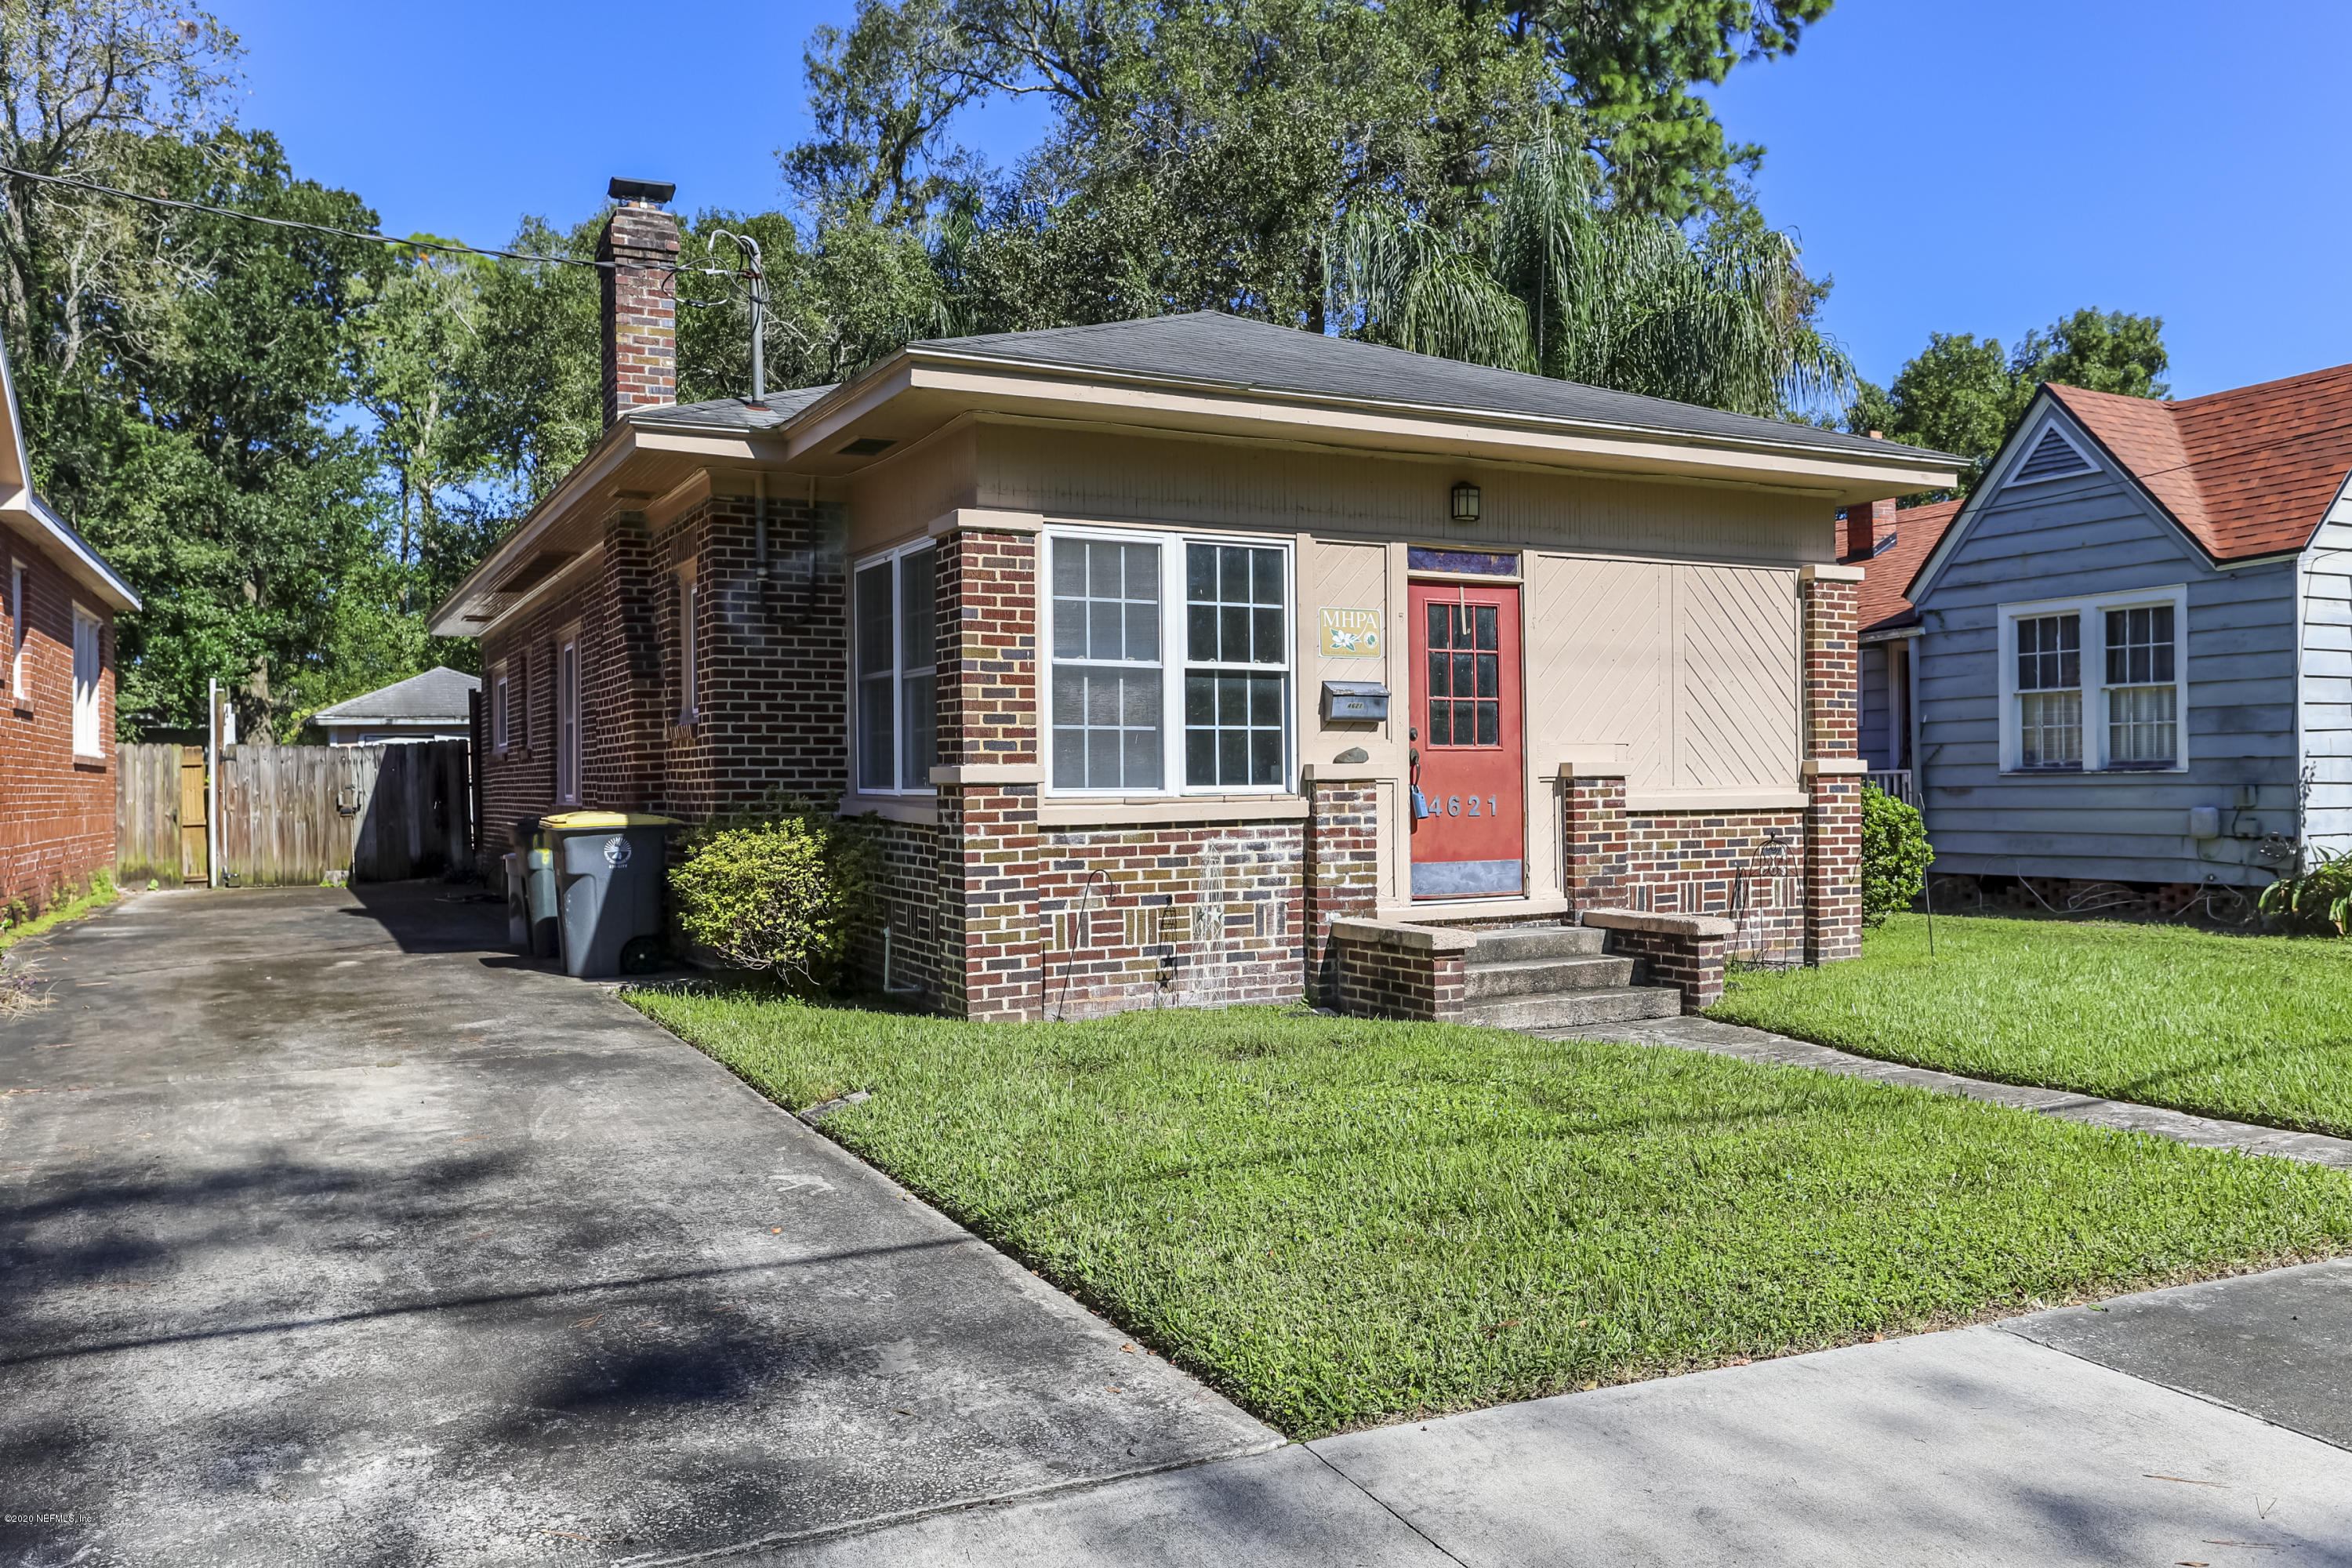 4621 ASTRAL, JACKSONVILLE, FLORIDA 32205, 3 Bedrooms Bedrooms, ,1 BathroomBathrooms,Residential,For sale,ASTRAL,1080706